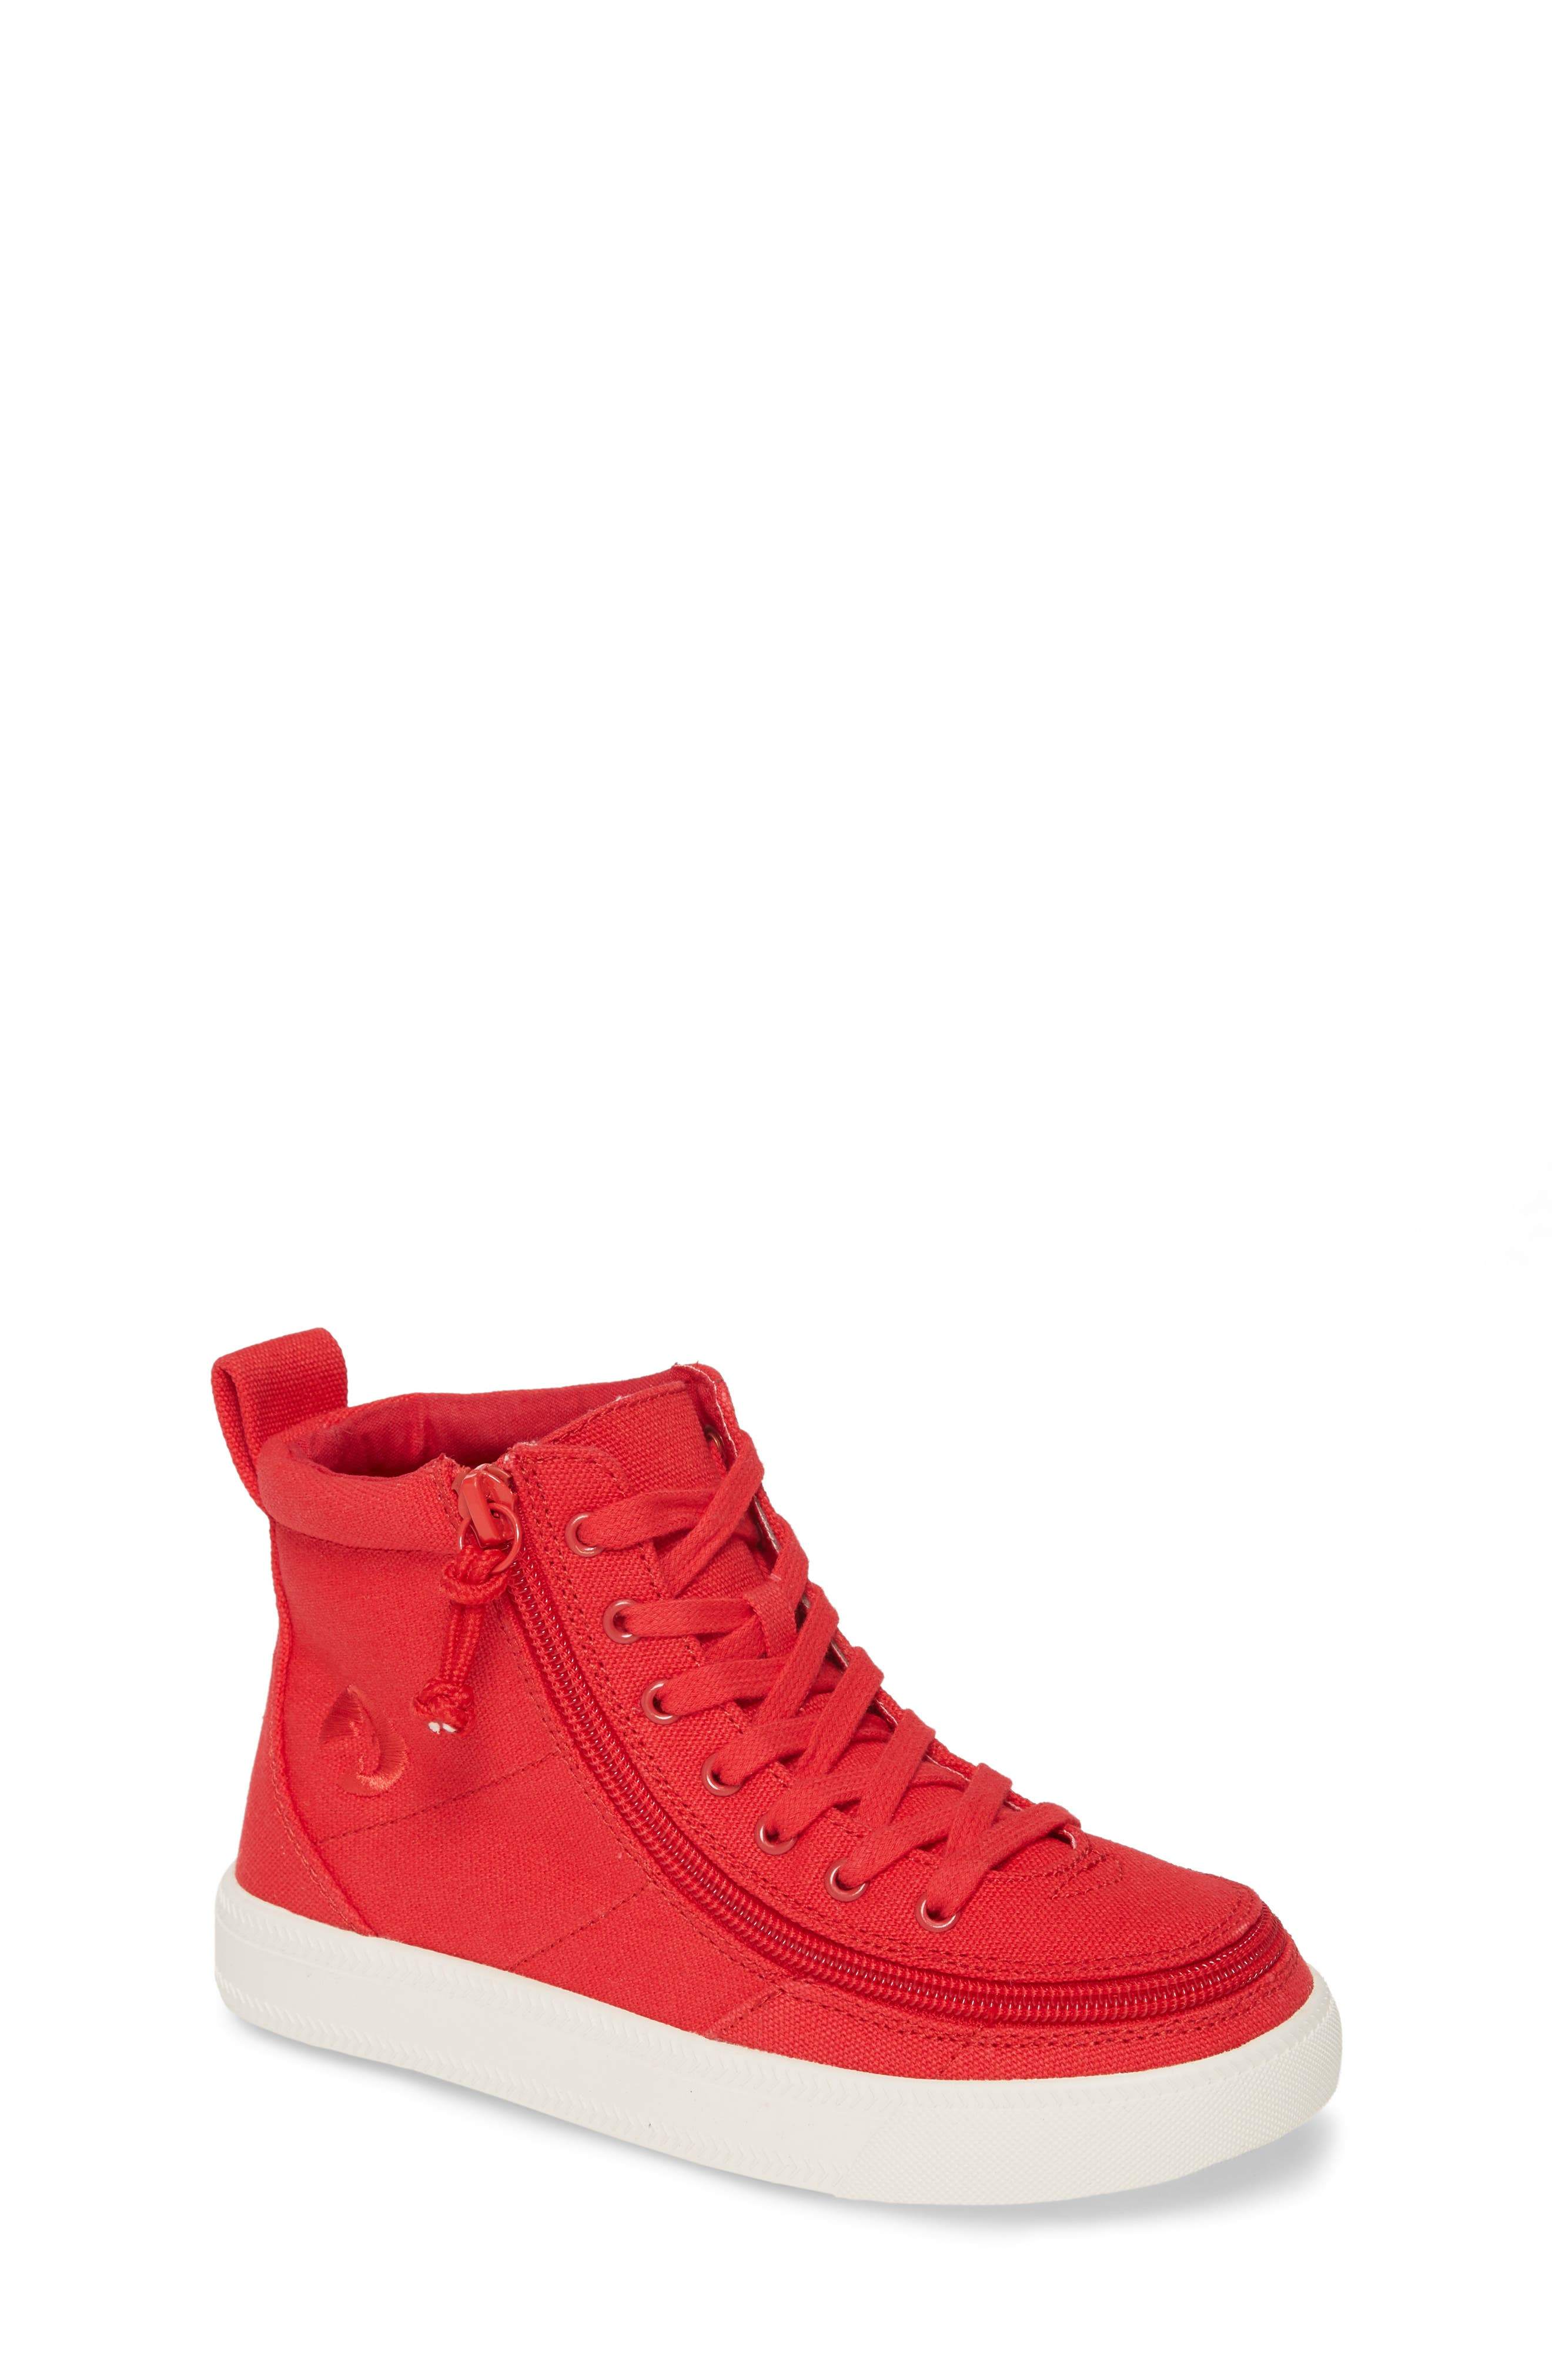 Toddler Billy Footwear Classic HiRise Sneaker Size 5 M  Red